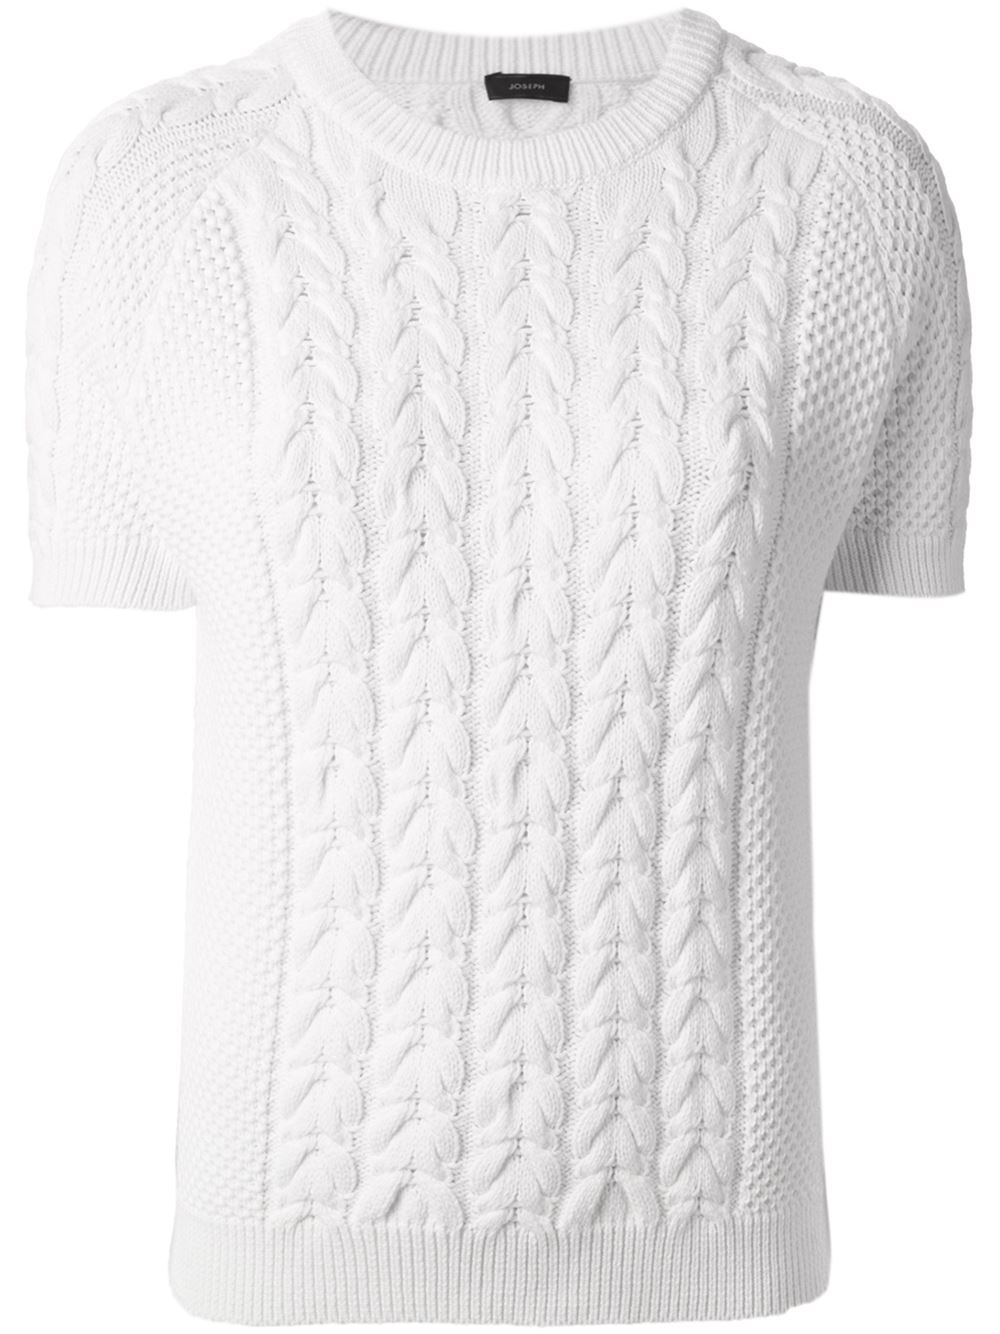 Joseph Short Sleeve Cable Knit Sweater in White | Lyst